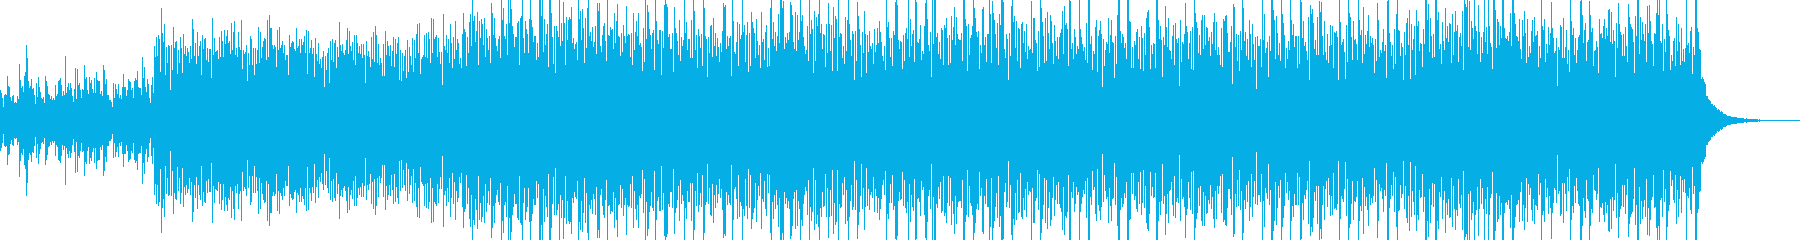 Image of automobile CM of a foreign manufacturer's reproduced waveform